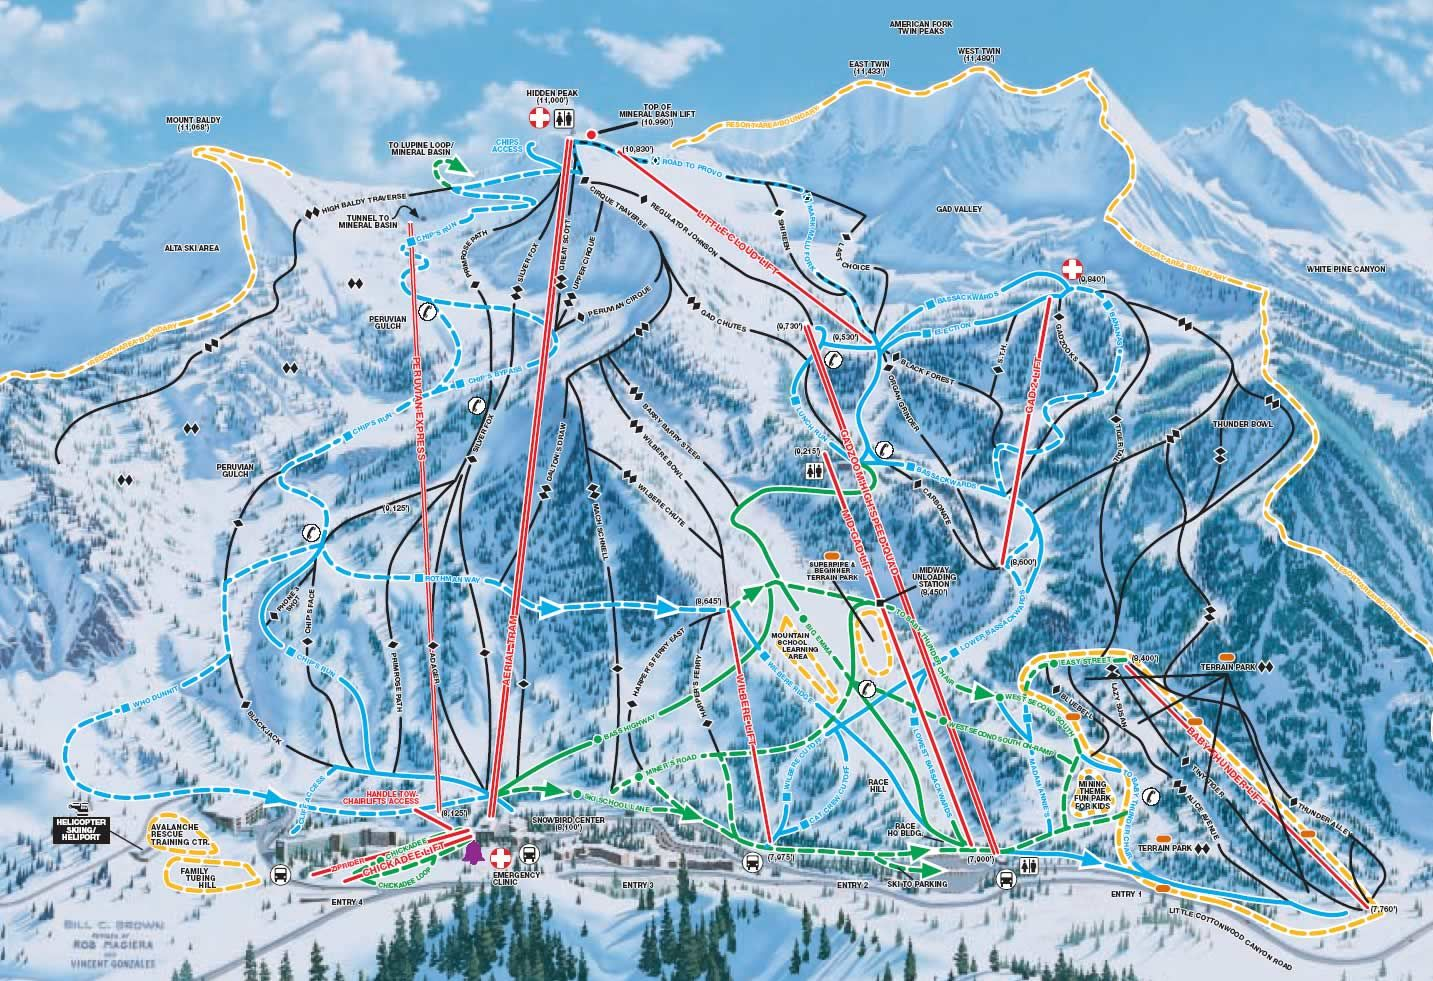 Red Mountain Trail Map In BC BC Pinterest Trail Maps And - Map os us ski resorts